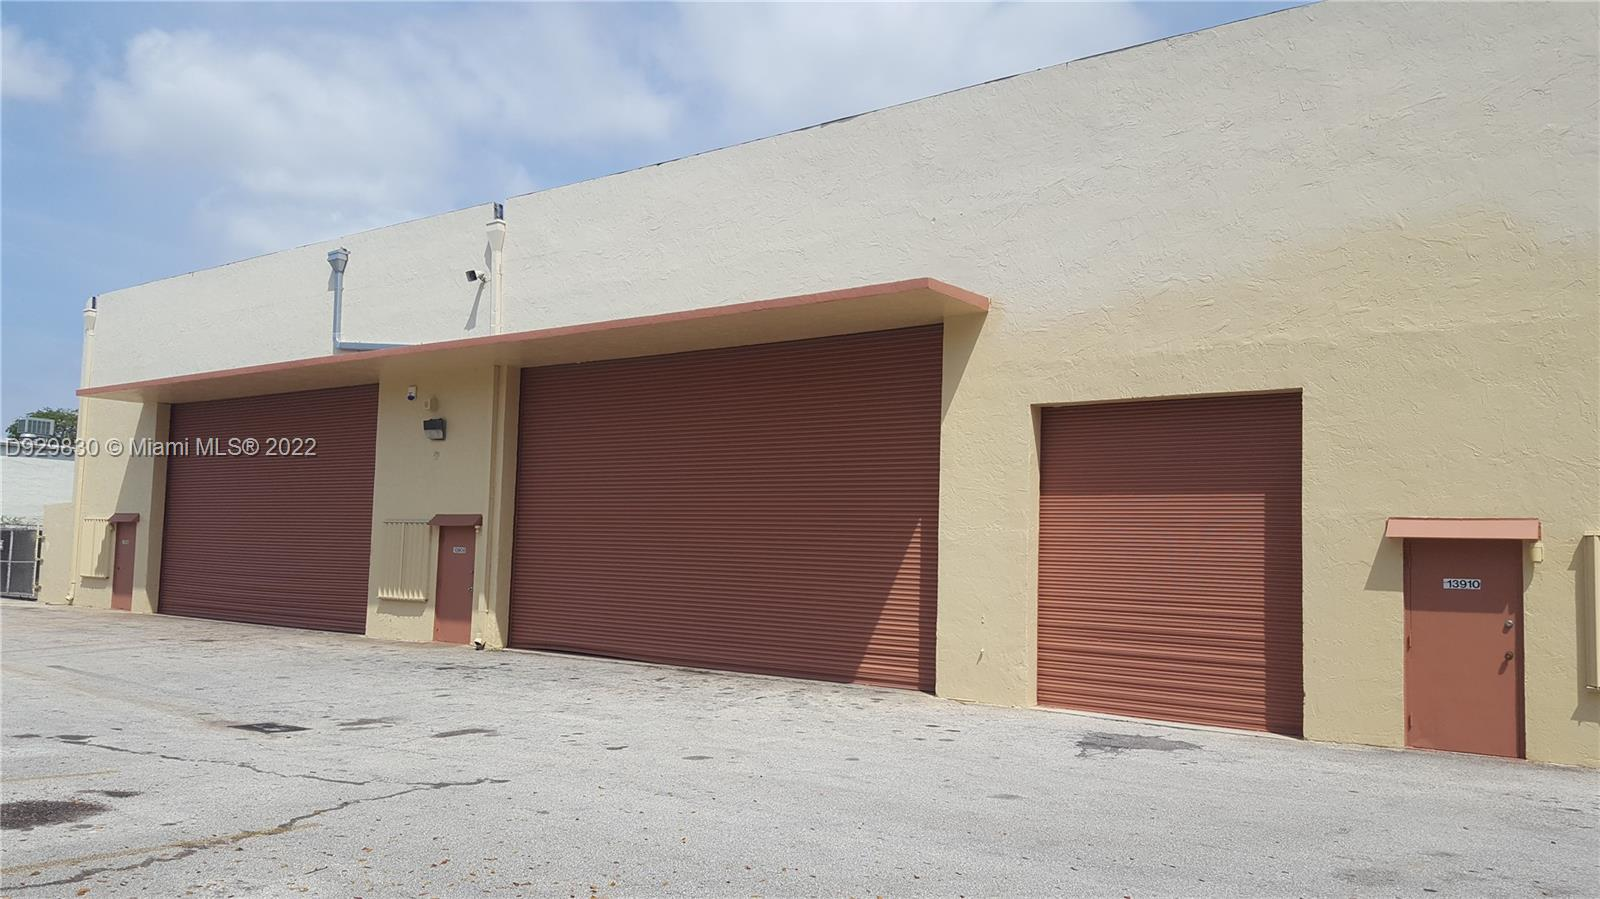 13880 SW 139 CT, Miami, Florida 33186, ,Commercial Sale,For Sale,13880 SW 139 CT,D929830